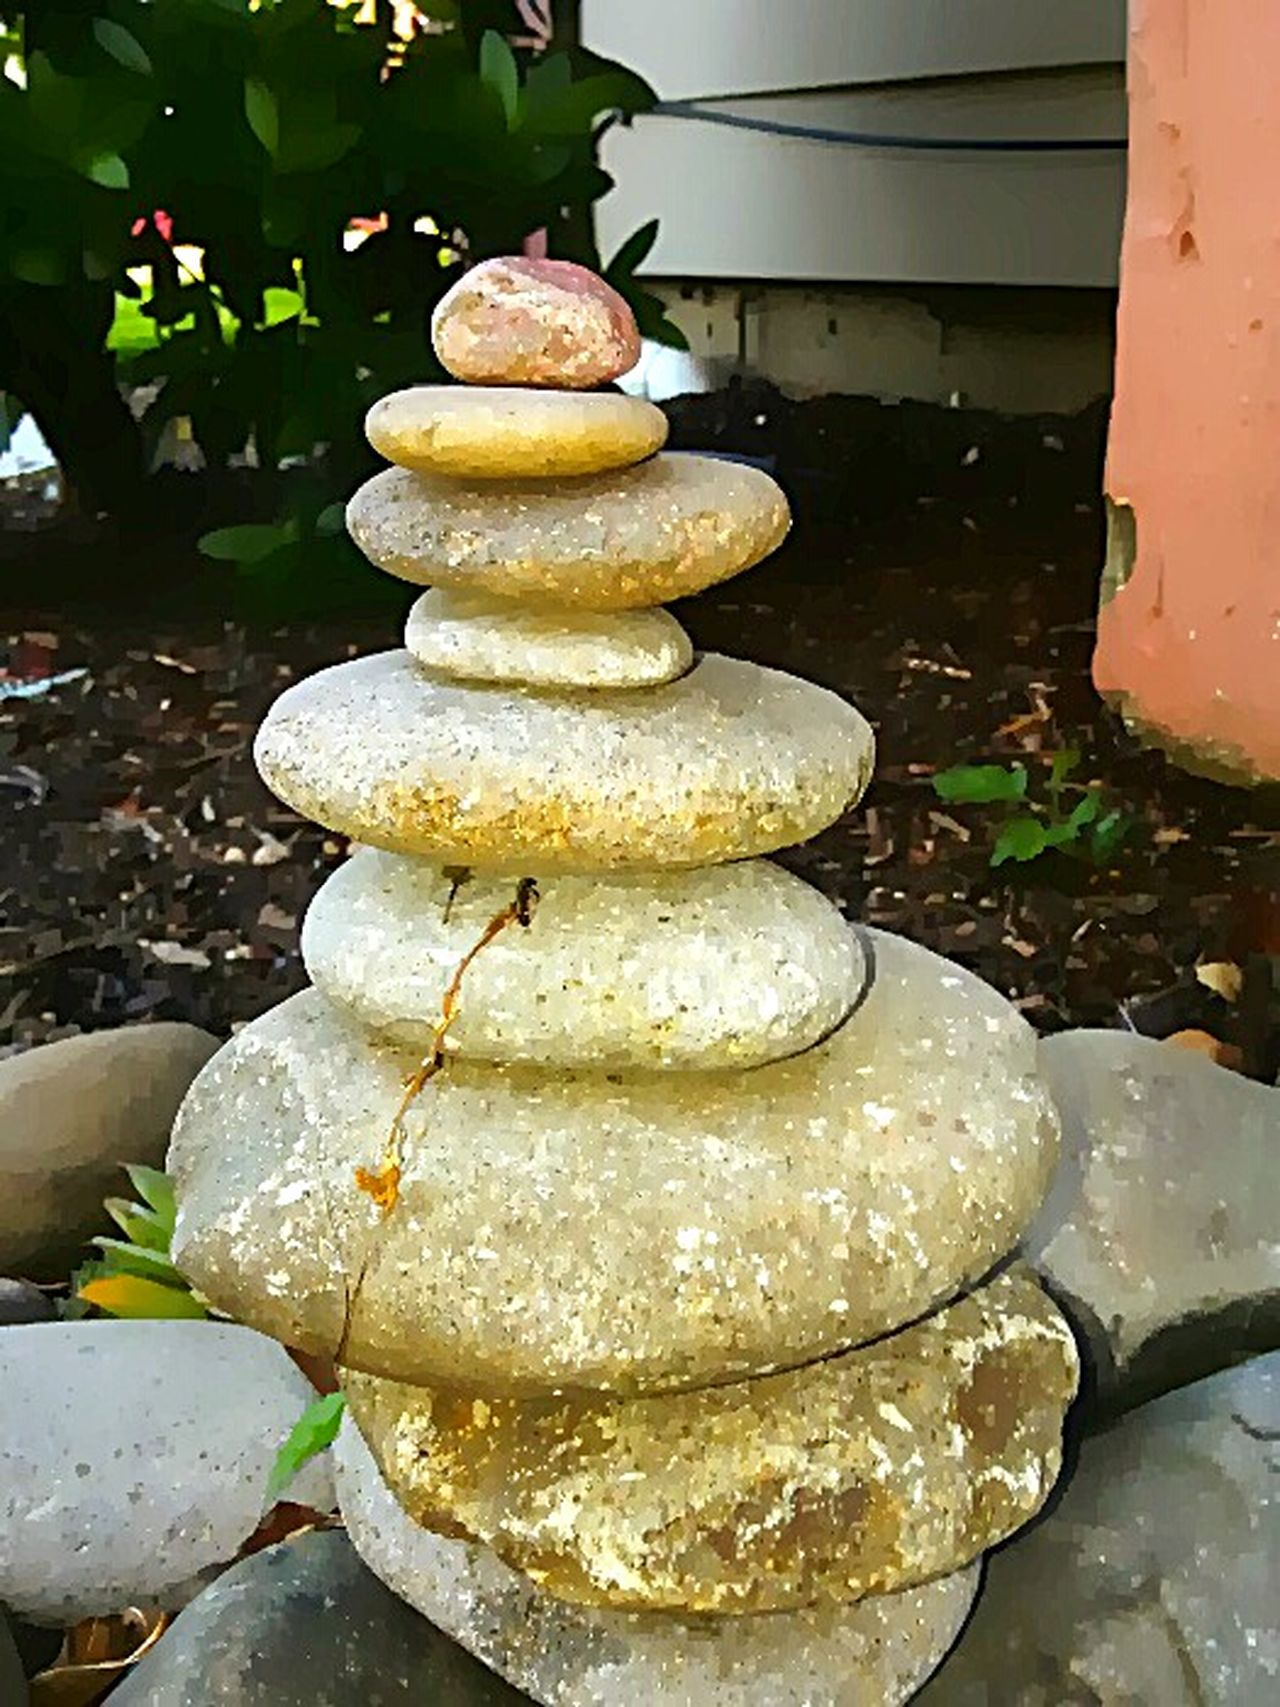 Stacked Stacked Stones Rock Jenga Stones Stonerdays Stonedsociety Rock It Rock On Stack Your Rocks Dude Stack Em High Stacks And Stones Stacked Rocks Pivotal Ideas Personaly Selected Each One